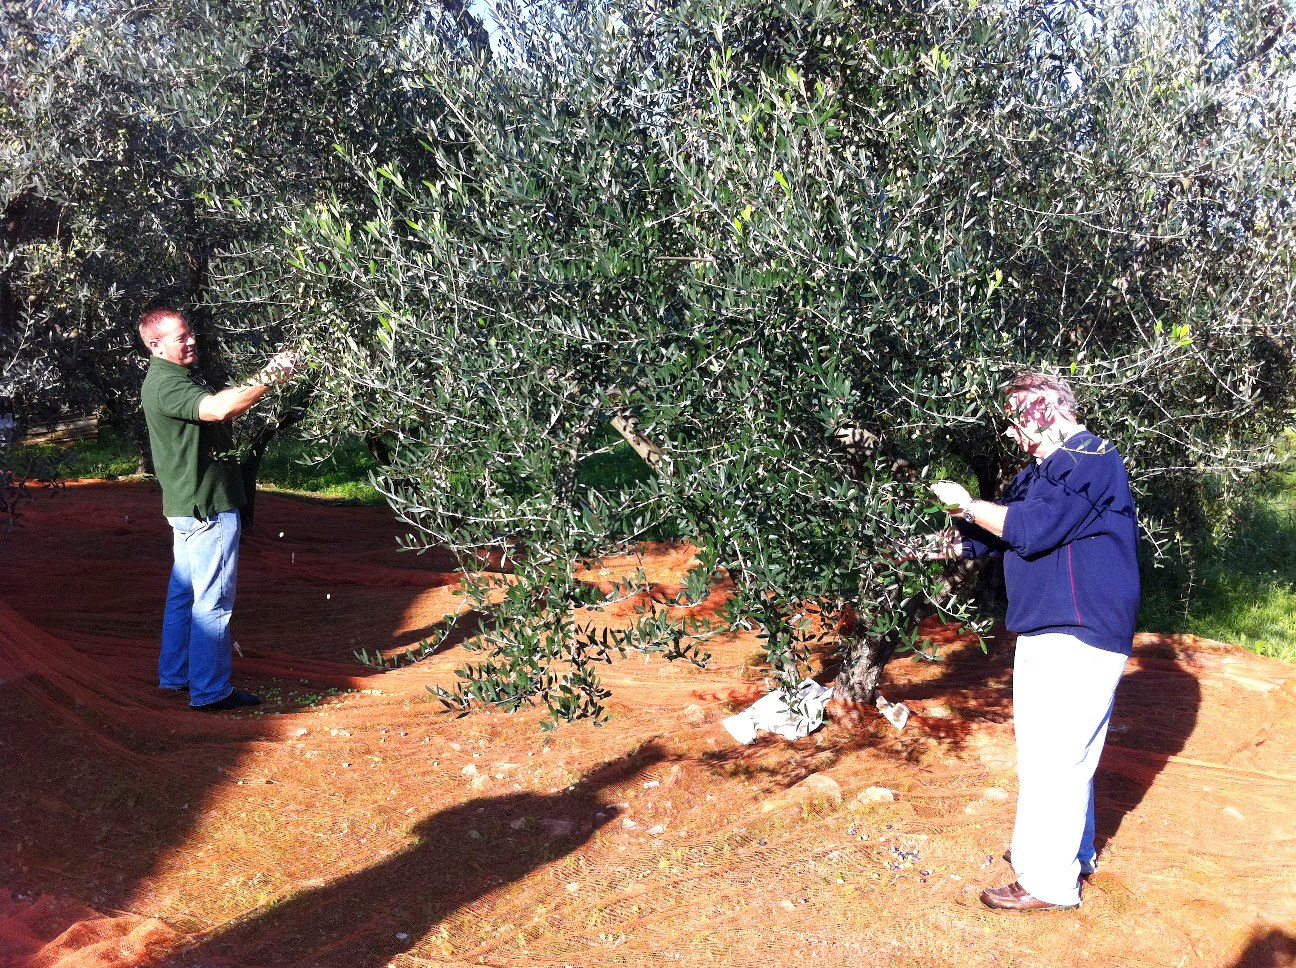 Picking olives in a sunny day